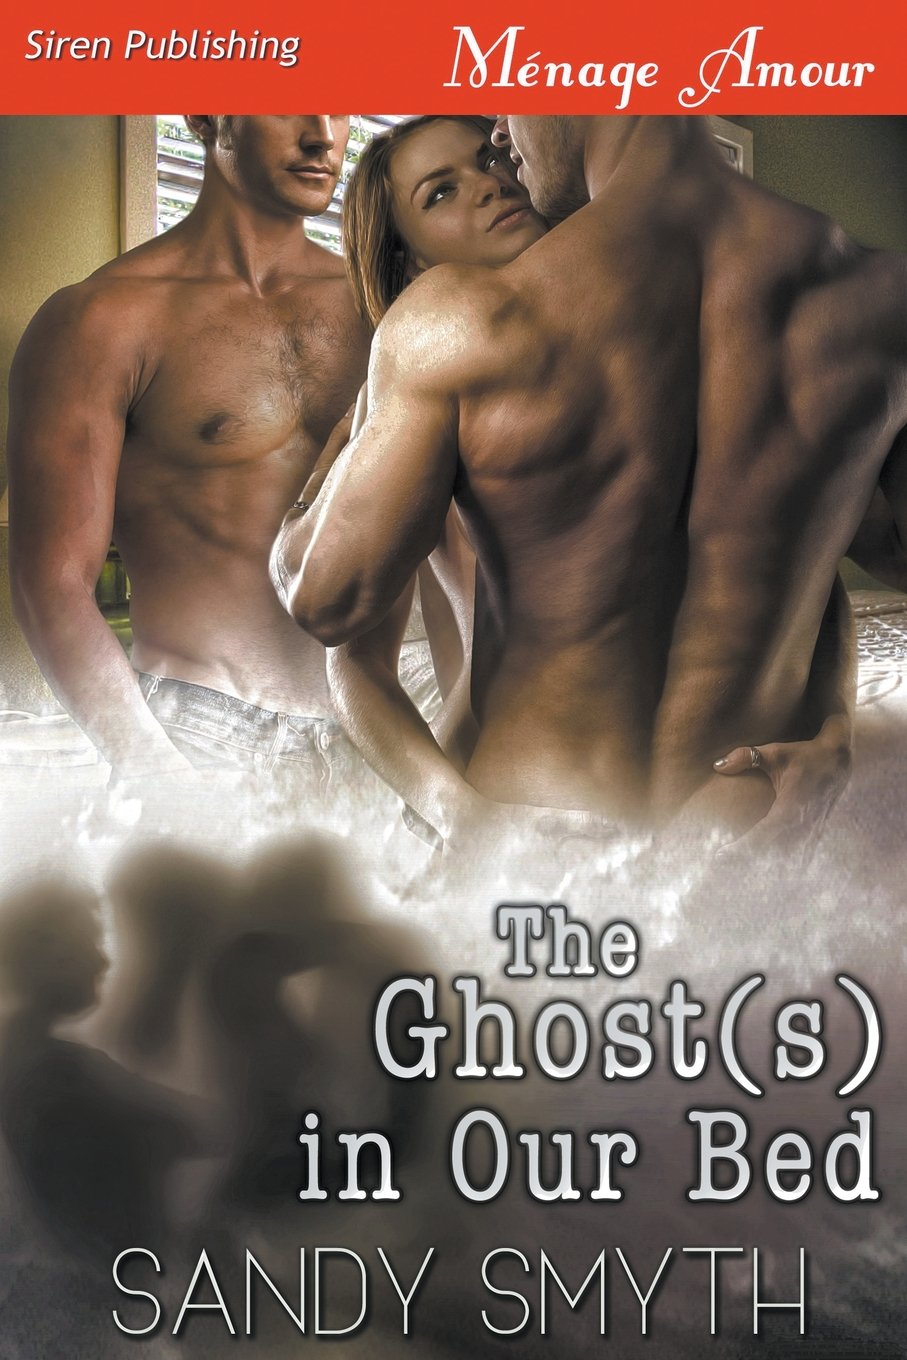 The Ghost(s) In Our Bed (Siren Publishing Menage Amour) Paperback – July  29, 2017